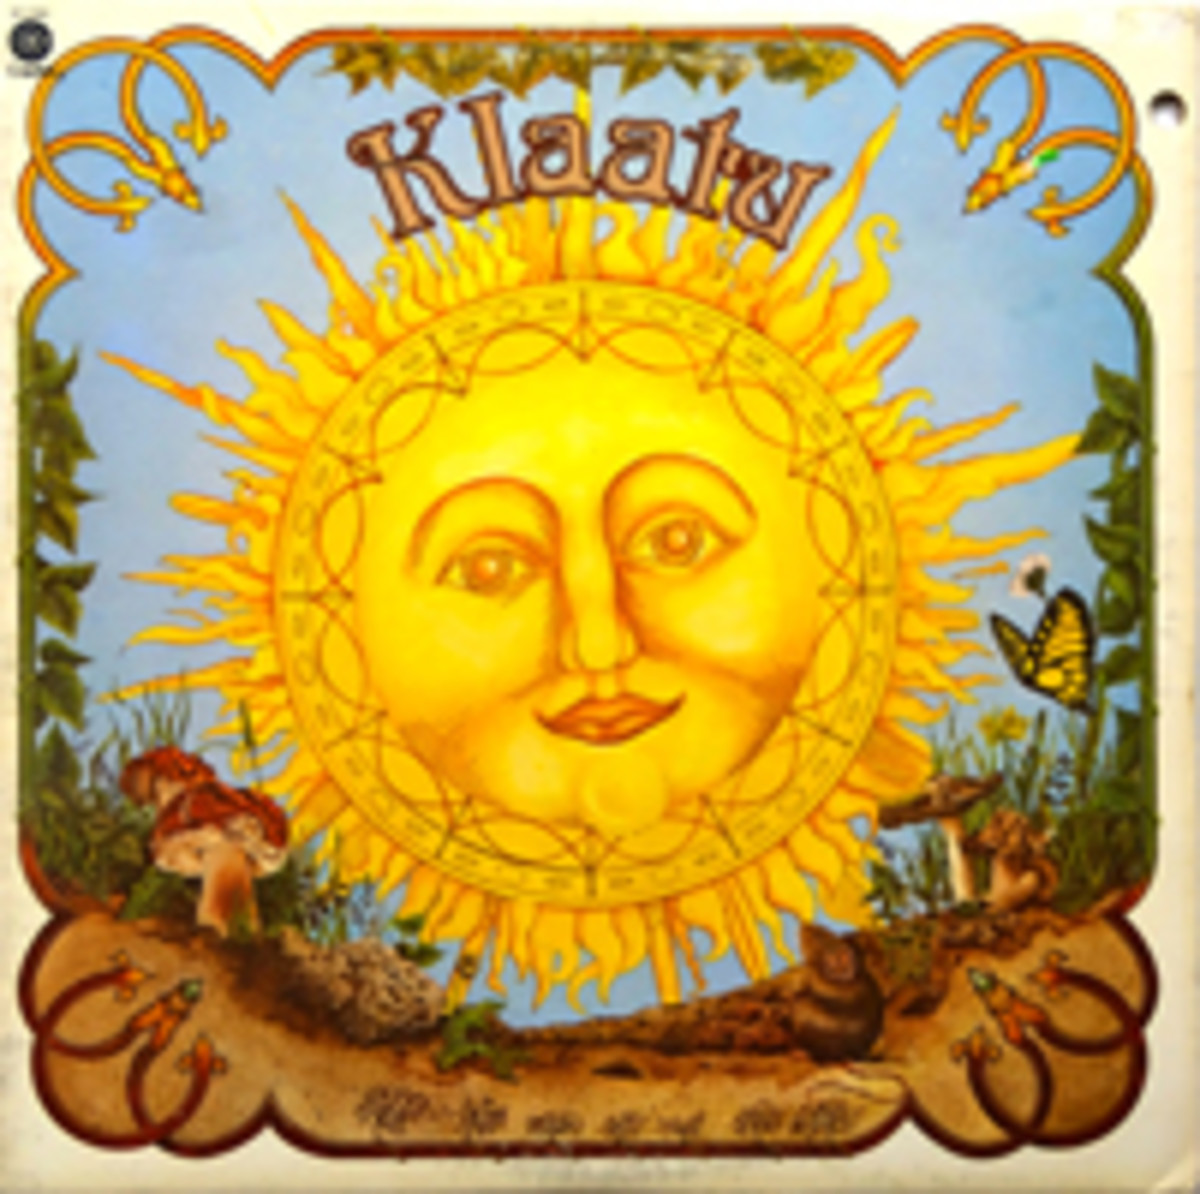 Klaatu debut album